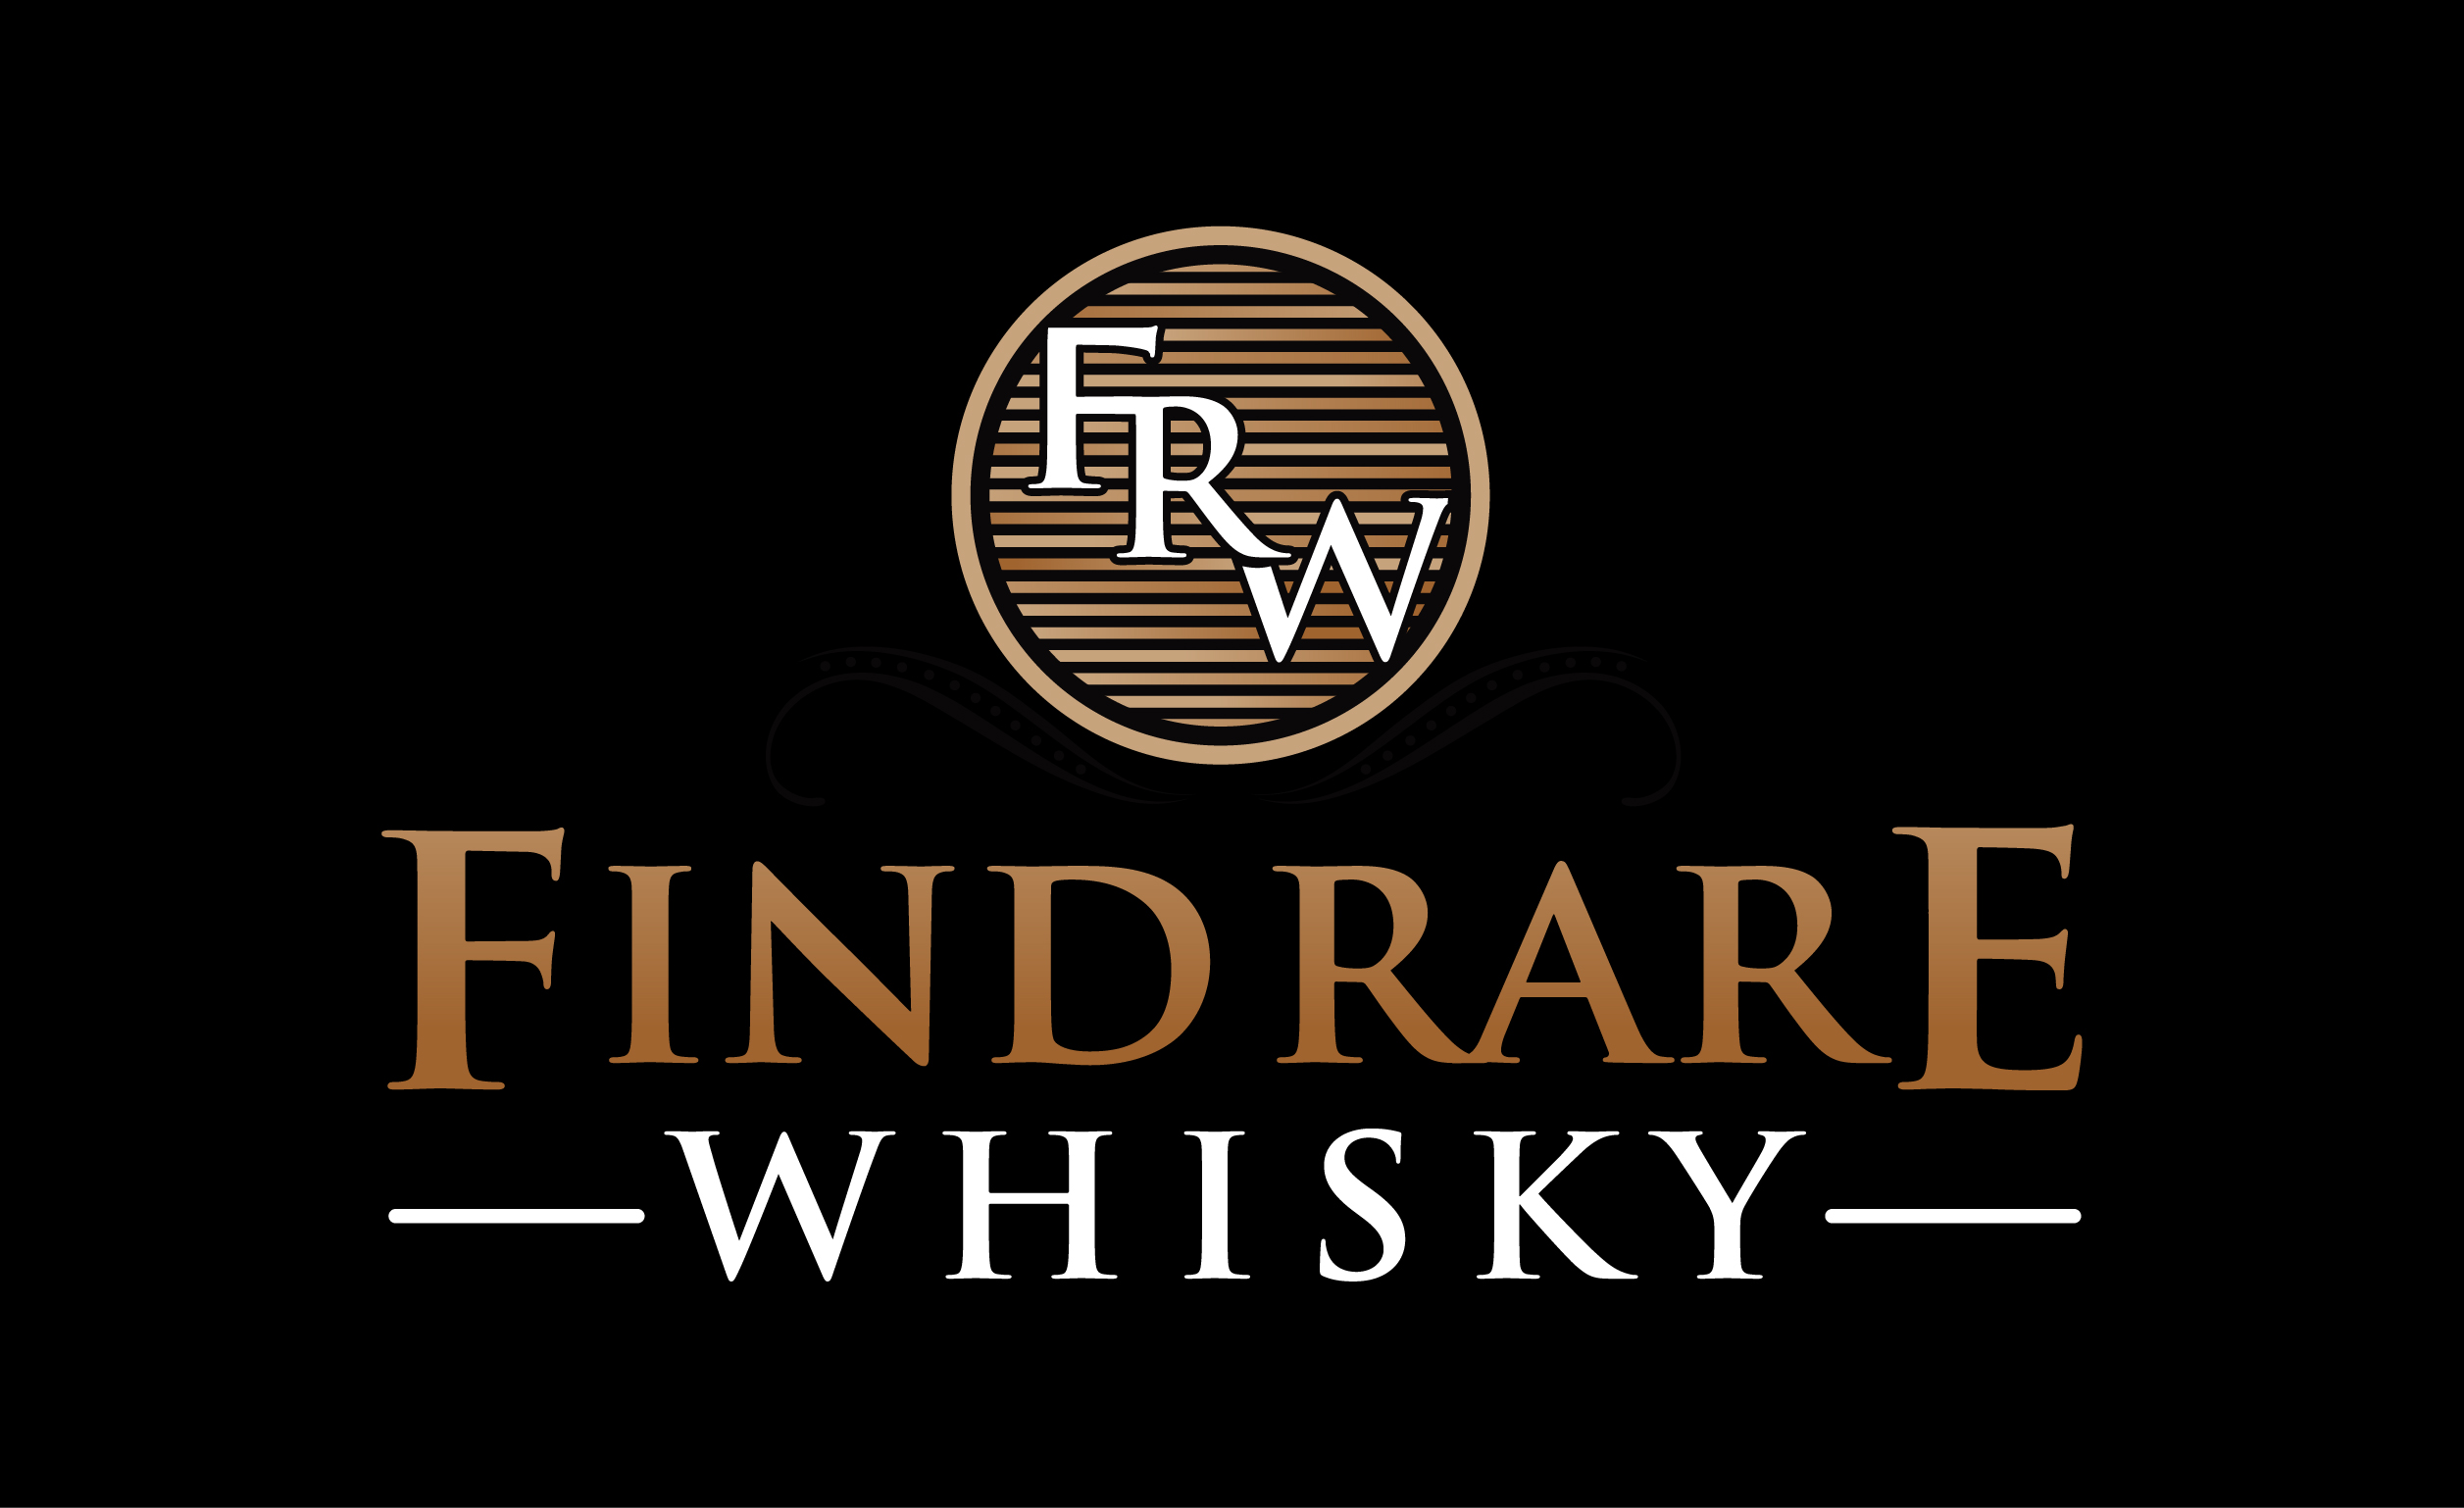 Find Rare Whisky